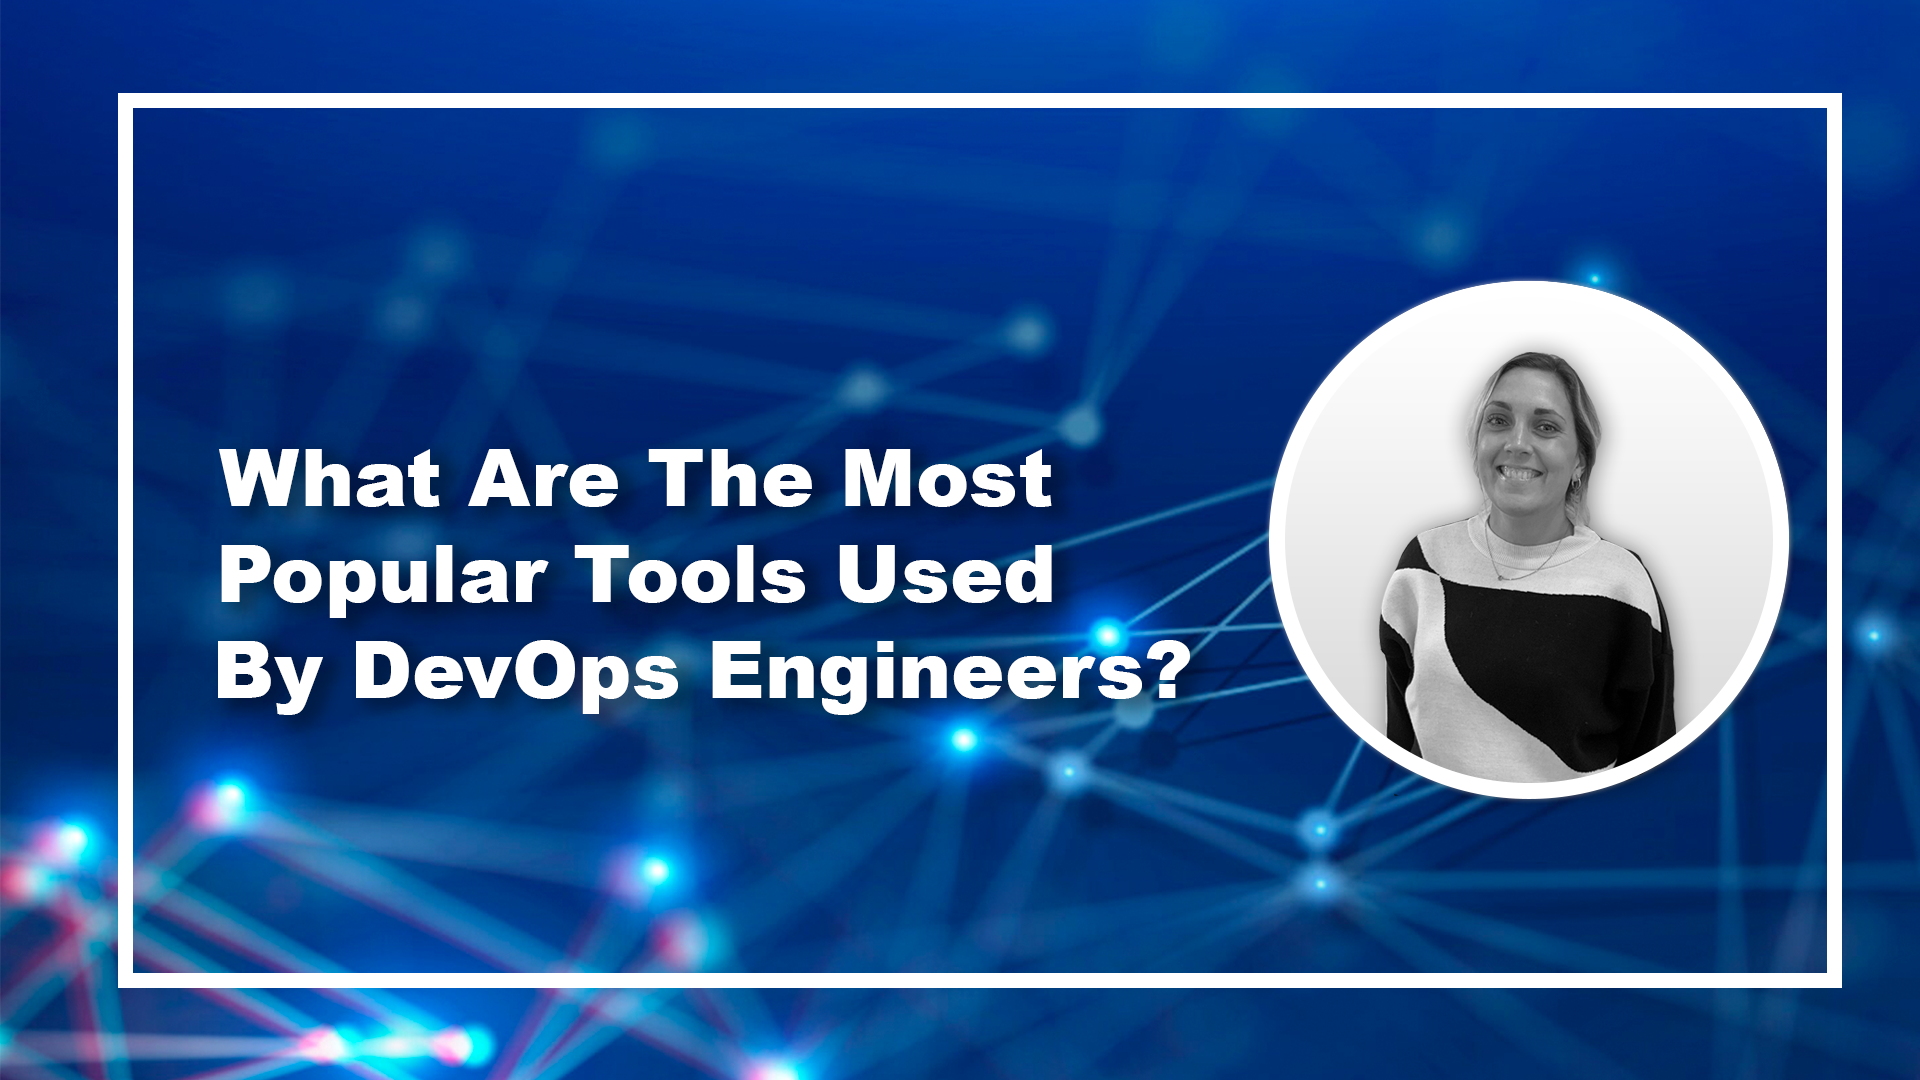 What Are The Most Popular Tools Used By DevOps Engineers?